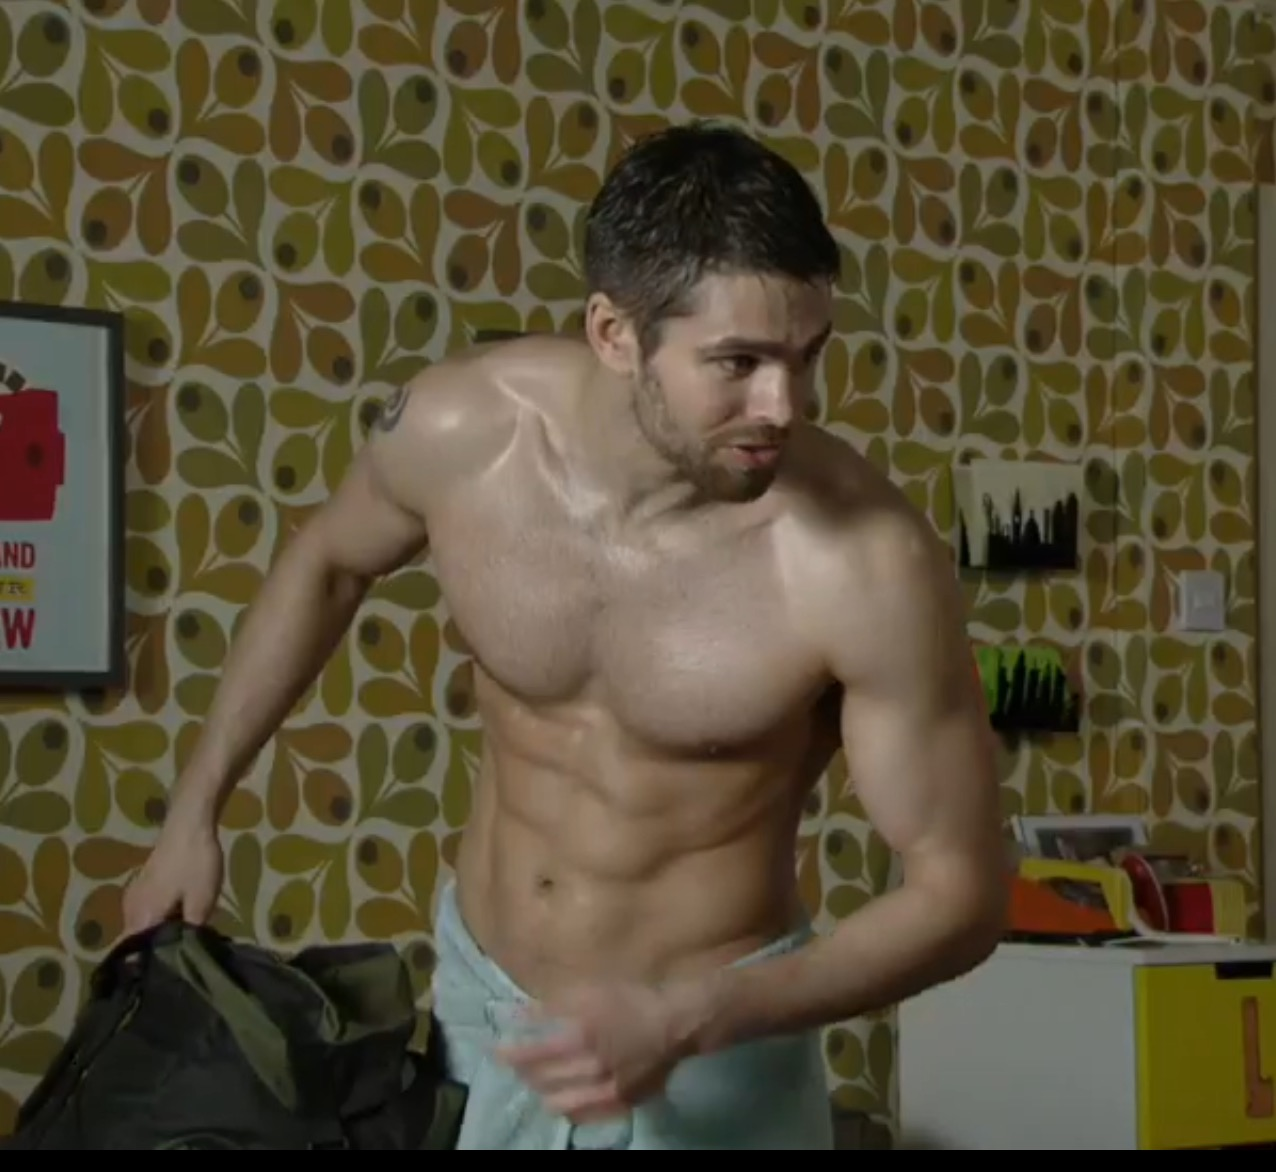 Splat! Meet EastEnders' new hunk Jack Derges (including hot gallery!): www.guyslikeu.com/boys/meet-eastenders-new-hunk-jack-derges